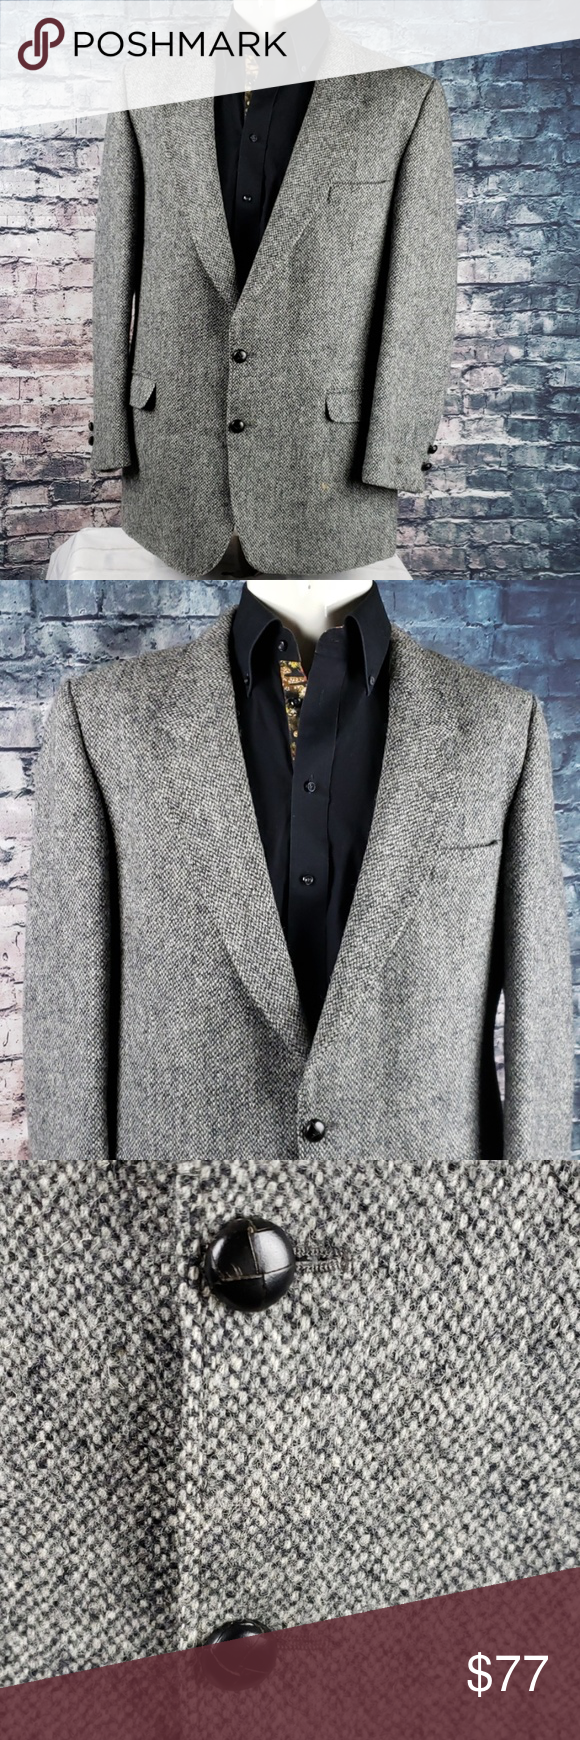 Austin Reed Harris Tweed Blazer 40s Made In Britain This Vintage Jacket Hearkens Back To A Time Of Pipes Funny Hats And I Tweed Blazer Vintage Jacket Blazer